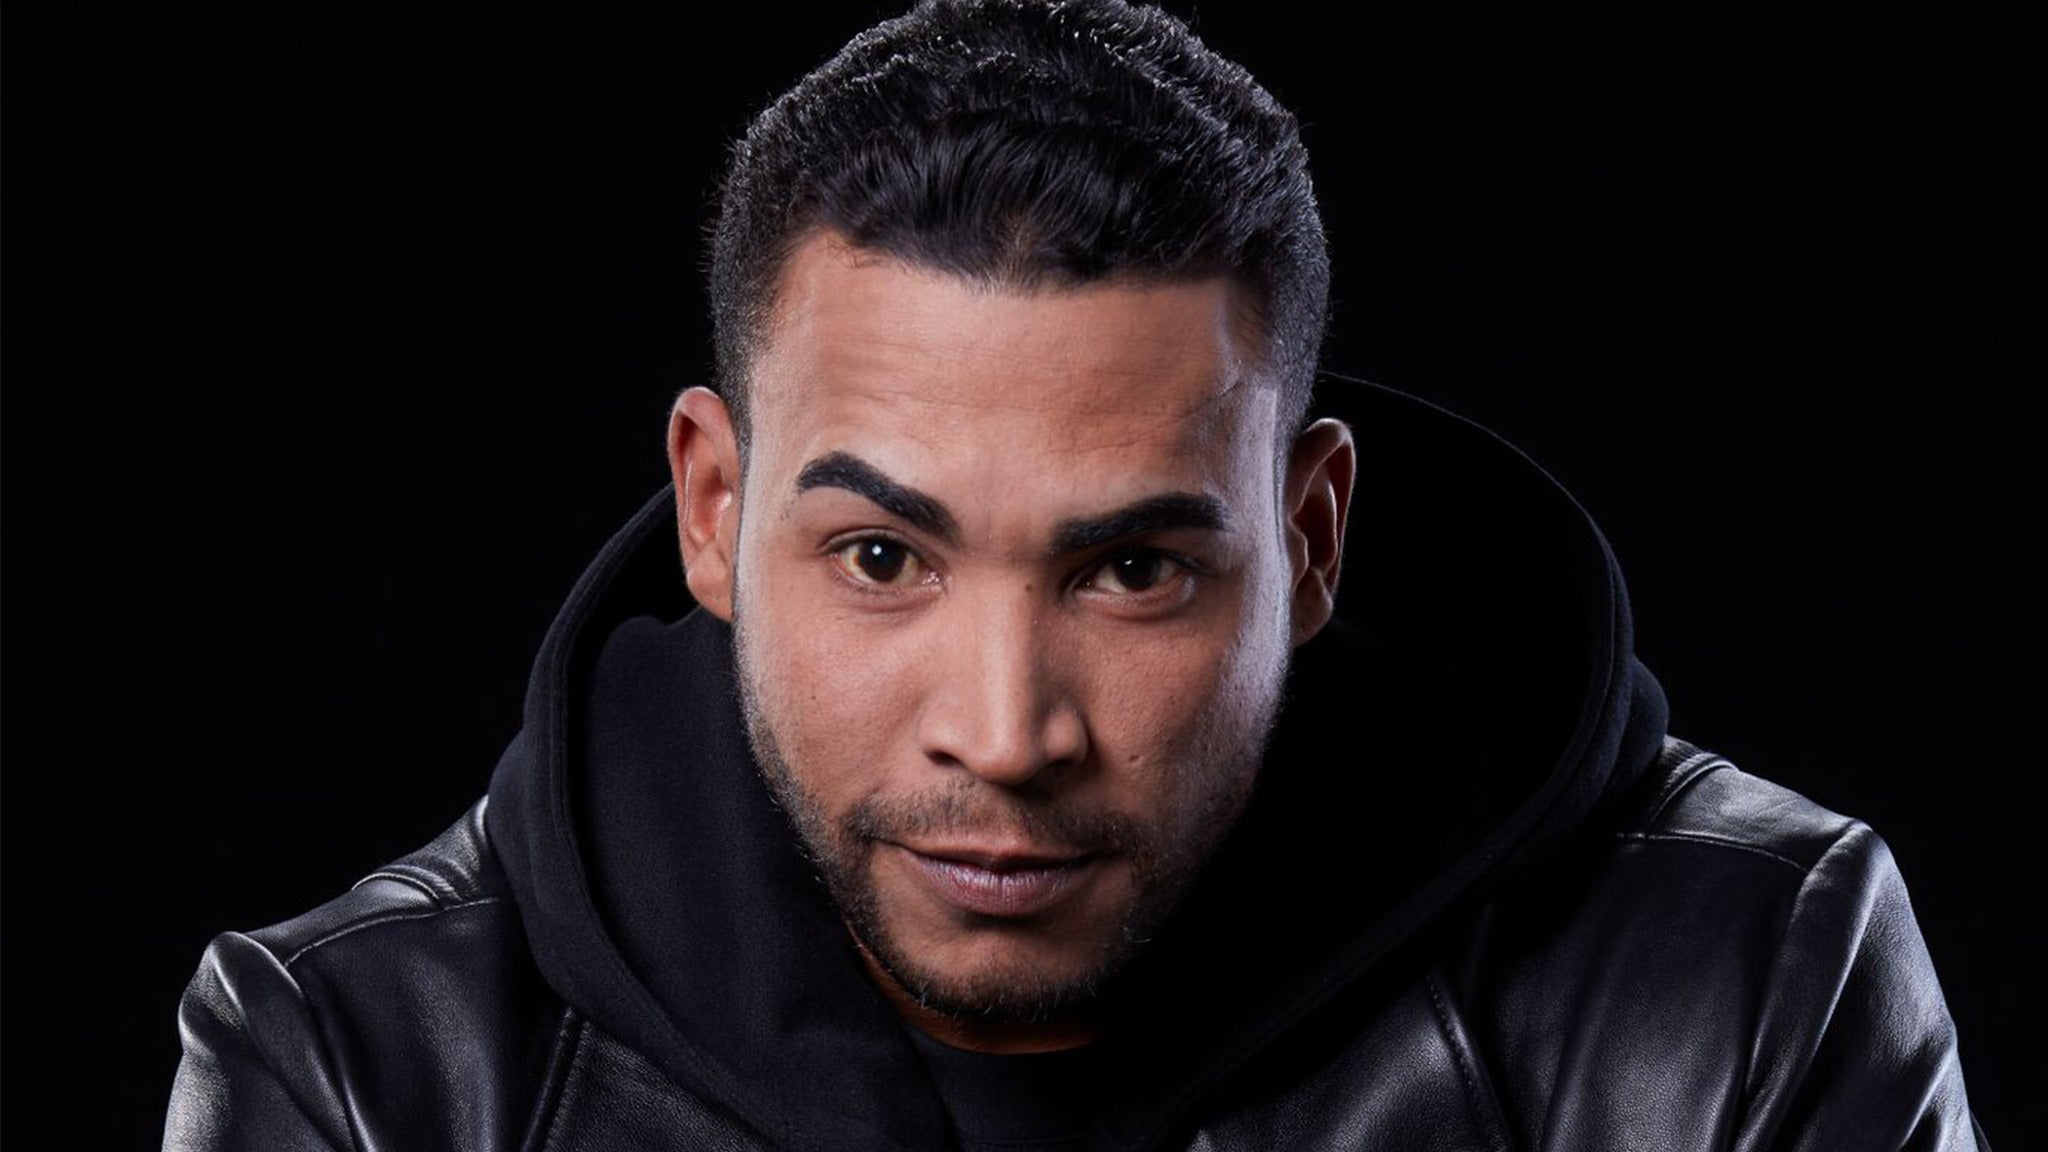 EL PURO PARTY! feat Don Omar at Shoreline Amphitheatre